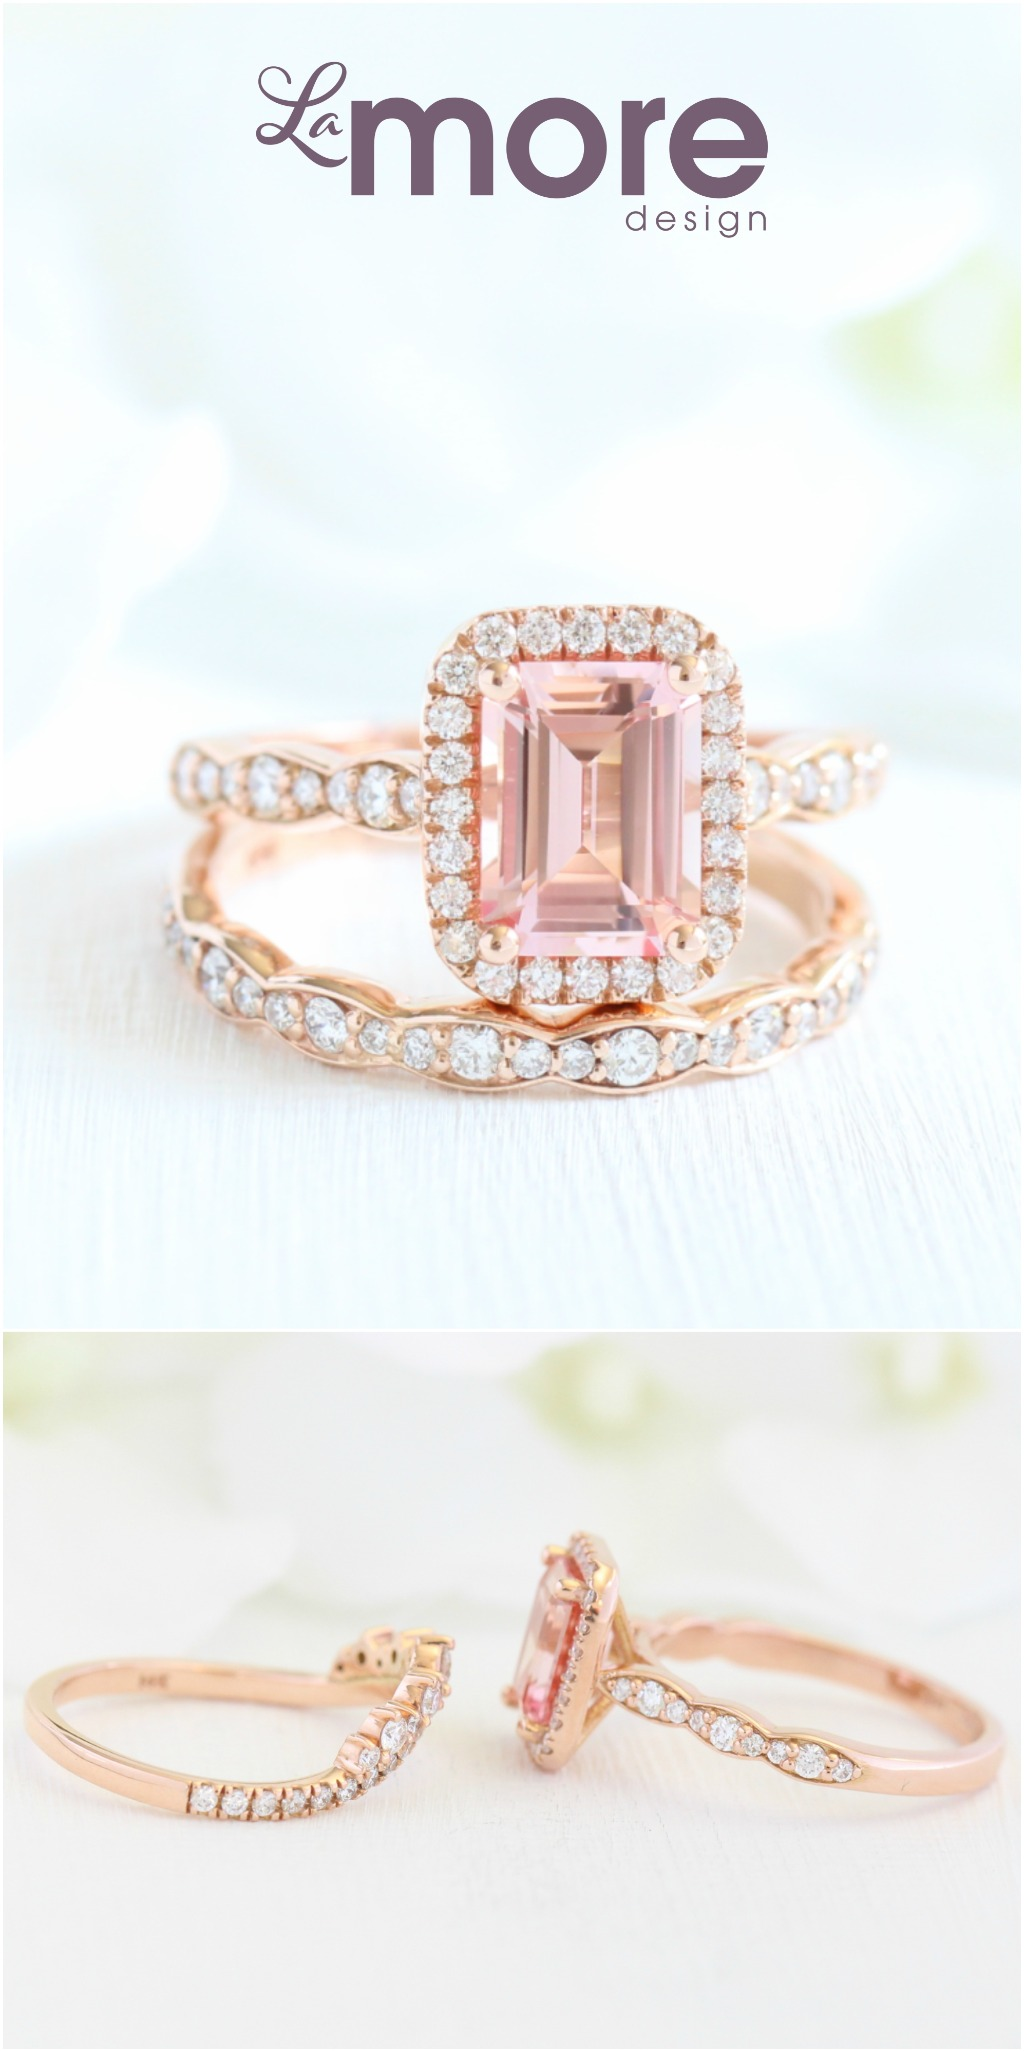 Classic yet elegant sapphire bridal ring set features a 8x6mm emerald cut conflict free cultured champagne peach sapphire set in 14k